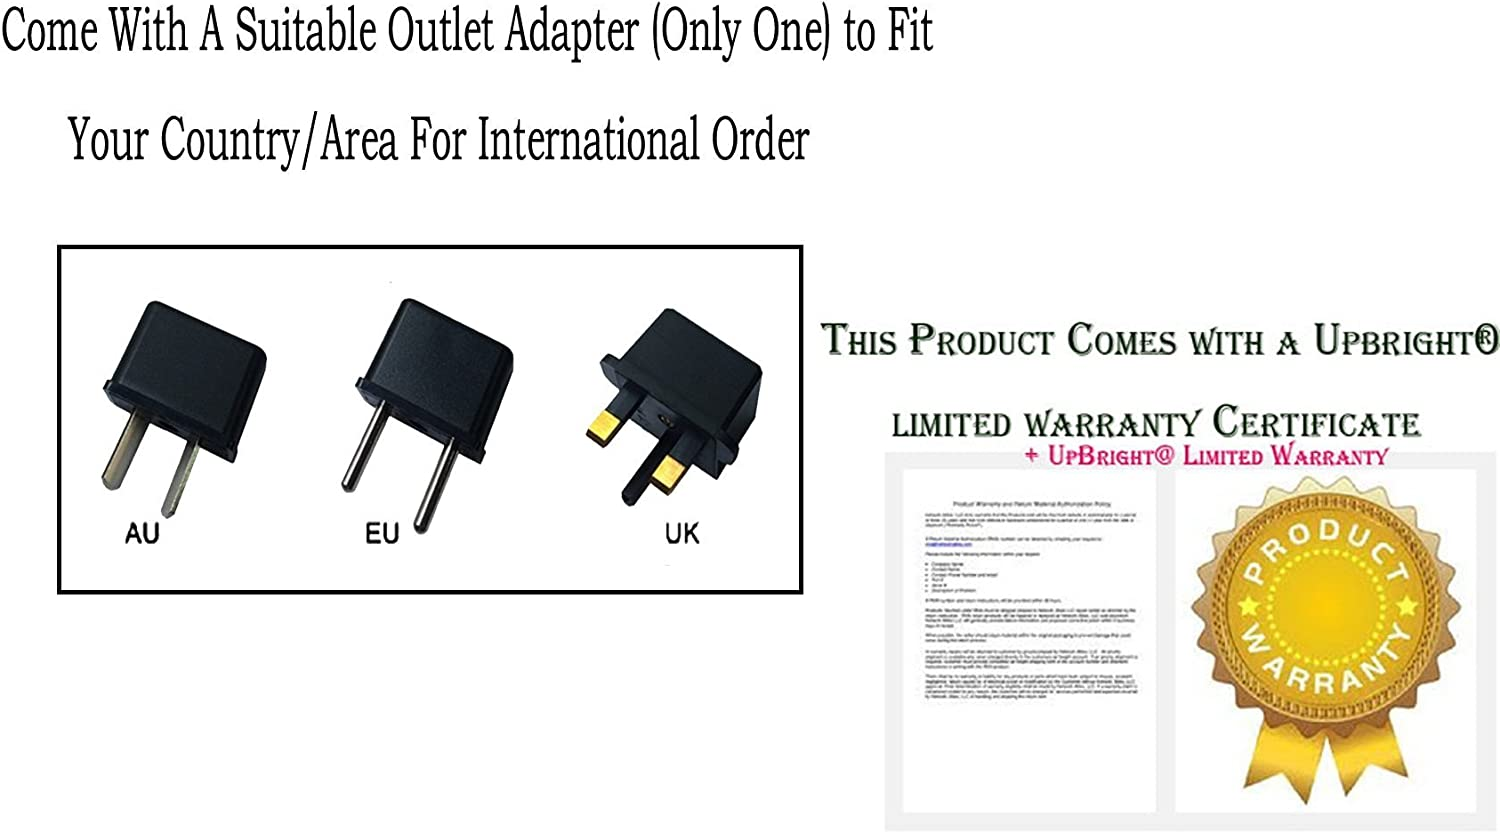 UpBright 5V AC//DC Adapter Compatible with Cisco UC Phone CP-8831 8831-MIC-WRLS CP-MIC-WRLS-S-US CP-8831-MIC-WRLS-S-US IP Wireless Microphone Kit CP-MIC-Charger-S HGPOWER ADPV622 5VDC 1A Power Charger